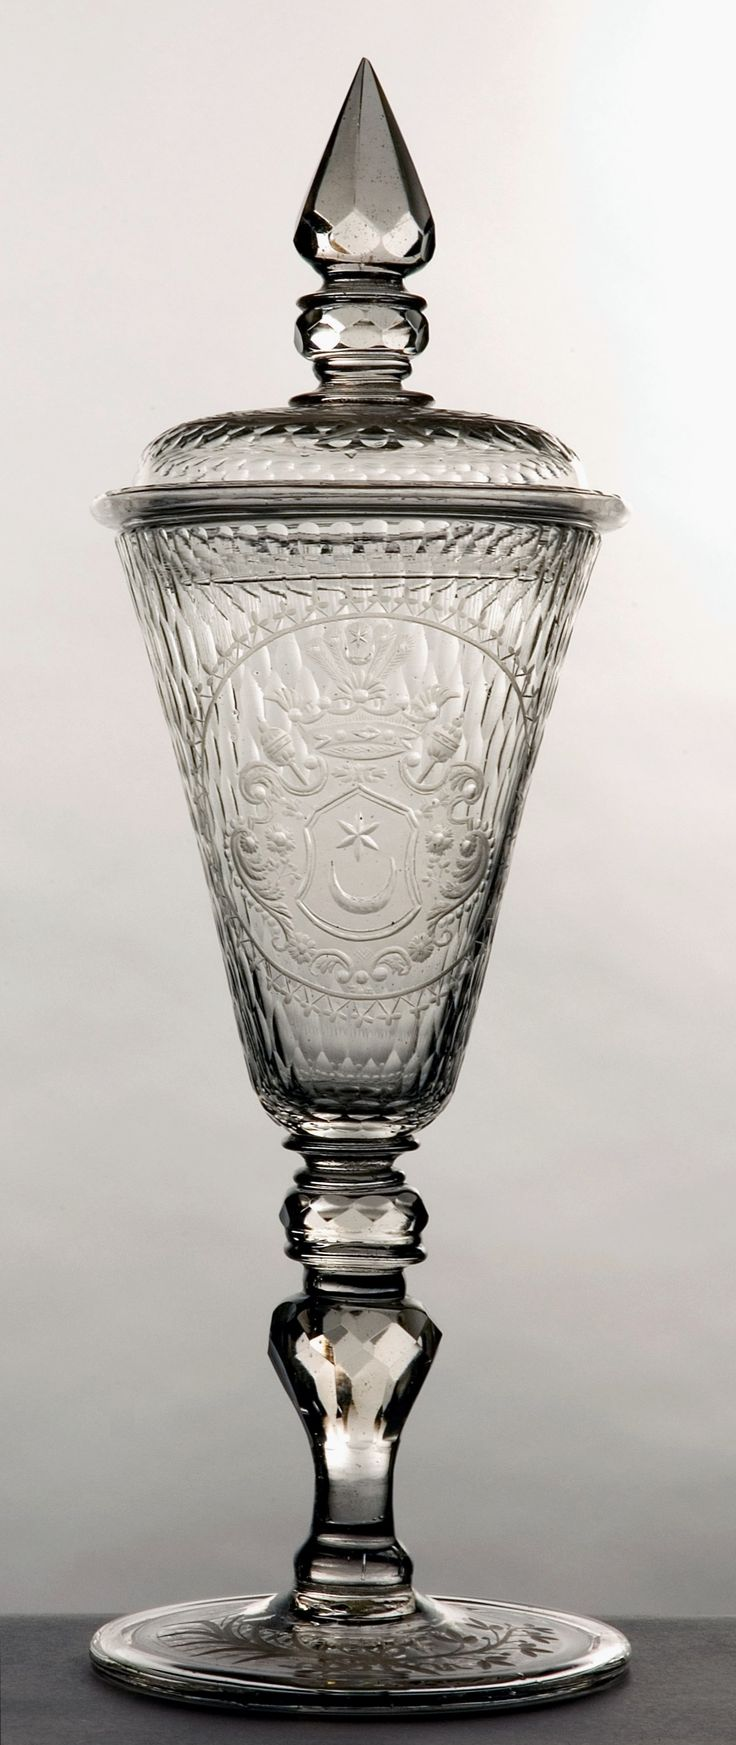 Goblet with coat of arms of Hetman Adam Mikołaj Sieniawski (Leliwa) by Crystal glass works in the Lubaczów district, 1718-1726, Muzeum Pałacu Króla Jana III w Wilanowie